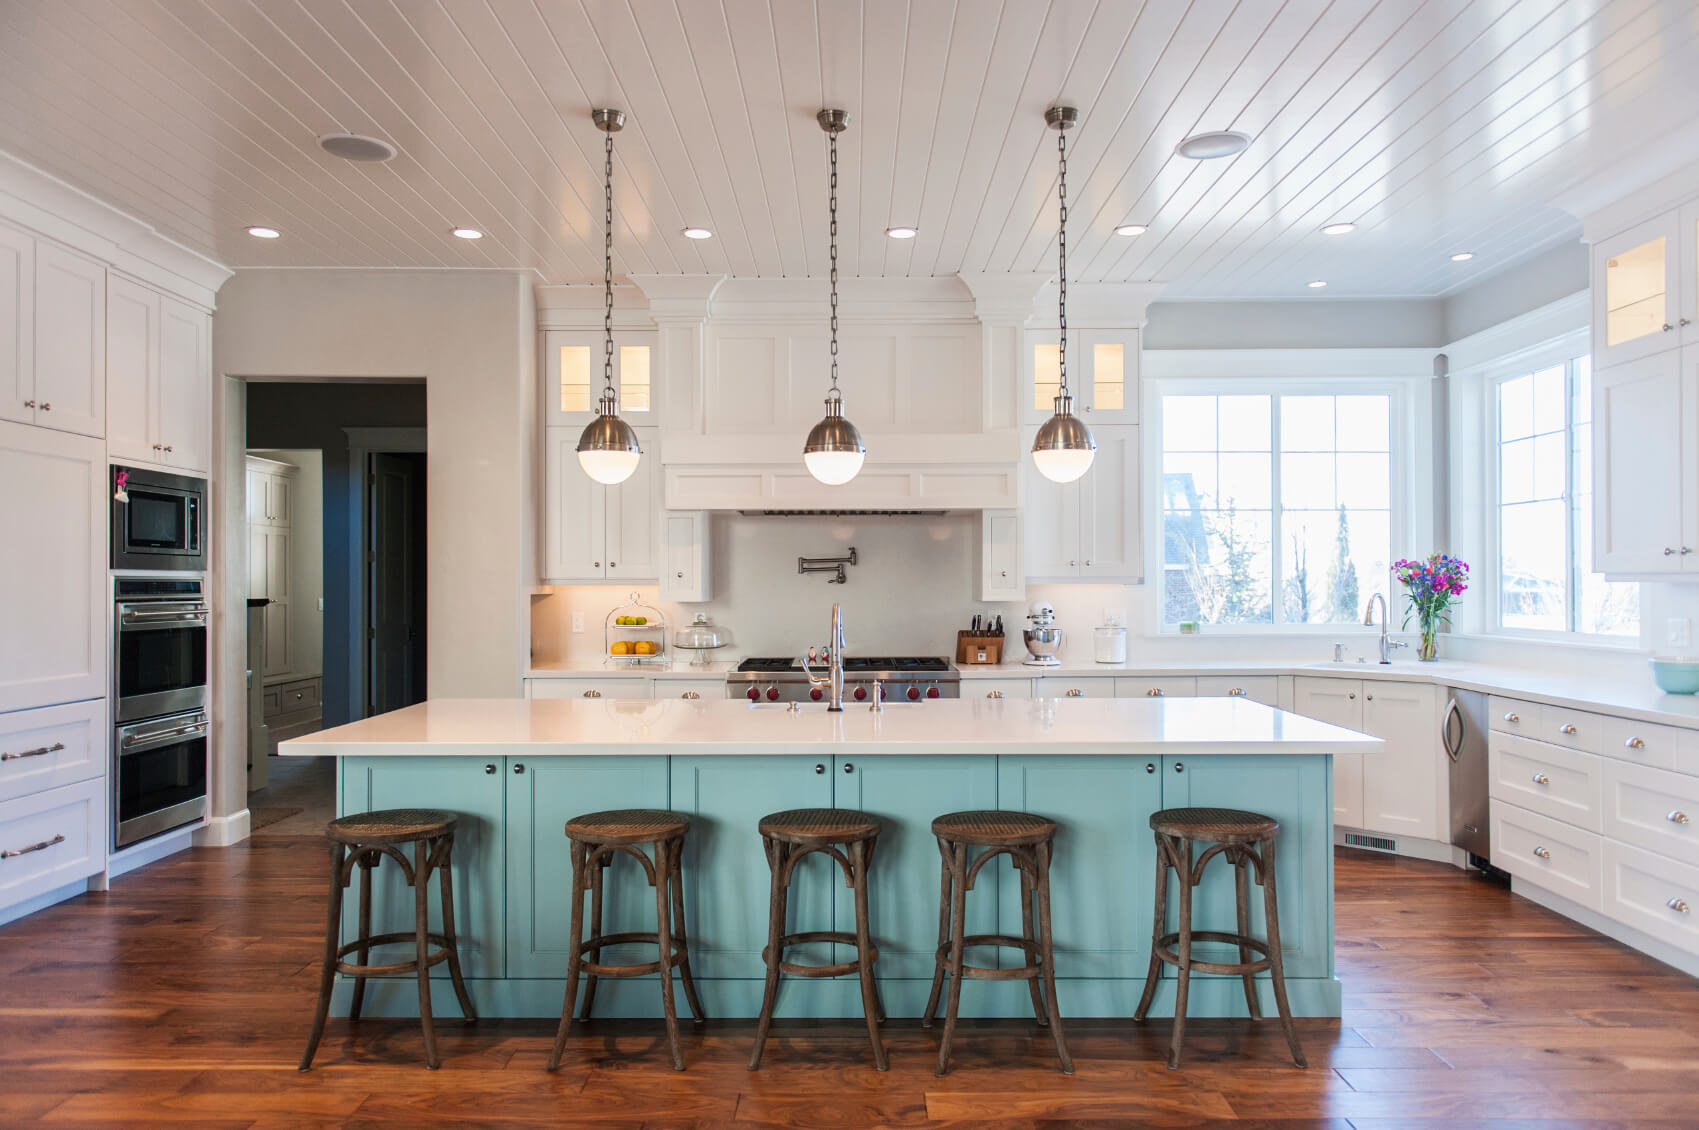 countertops, and large sky blue island over natural hardwood flooring